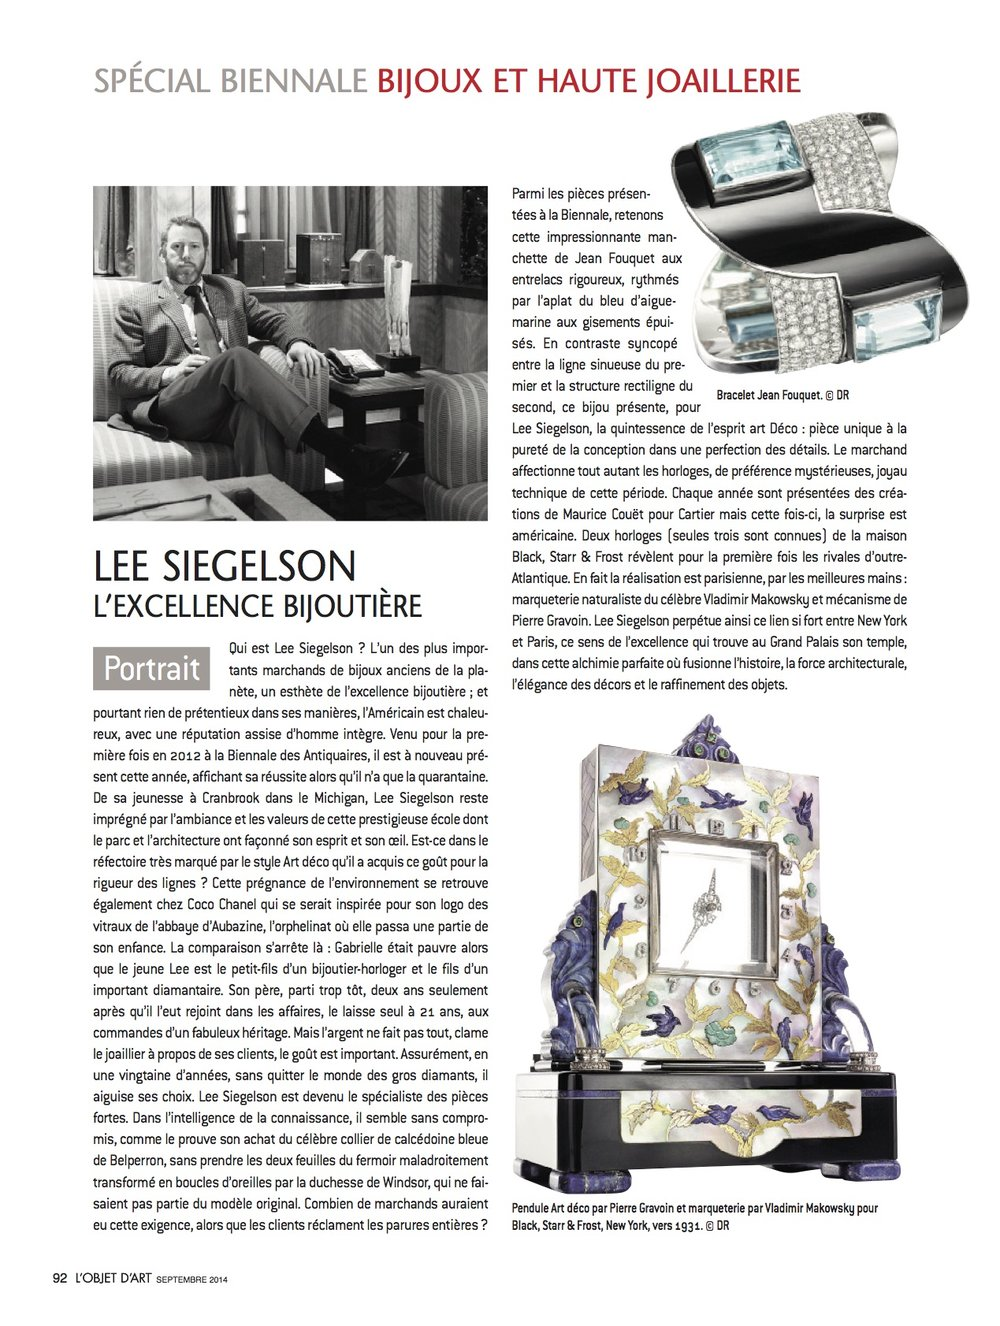 Featured pieces: Art Deco Aquamarine, Diamond, and Enamel Bracelet by Jean Fouquet for Maison Georges Fouquet, Paris, 1926; Art Deco Gem-Set and Mother-of-Pearl Chinoiserie Mystery Clock by Pierre Gravoin, Paris, for Black, Starr & Frost, New York, circa 1930, Mosaic by Vladimir Makovsky